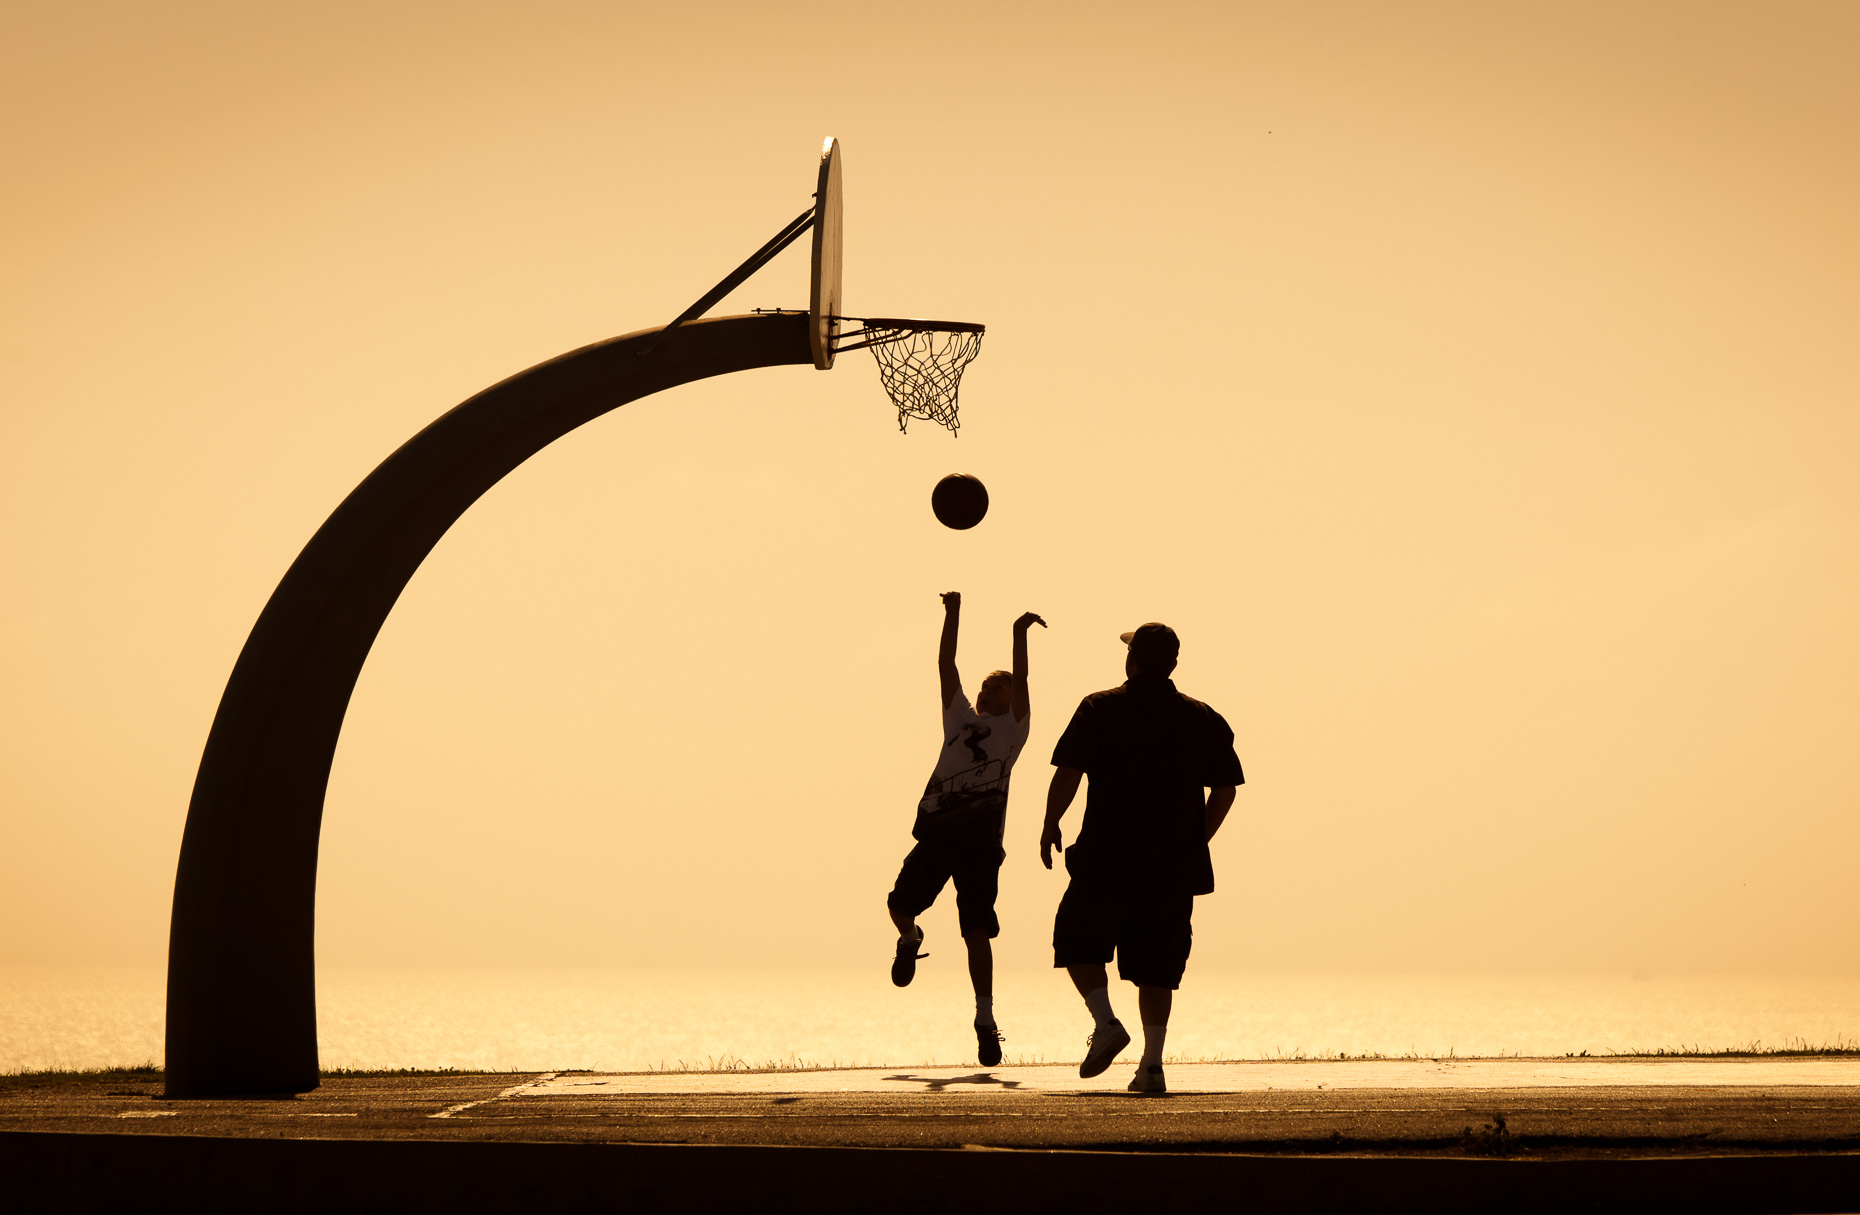 Silhouette of people playing basketball on court with sunset sky in background. Fitness. David Zaitz Photography.